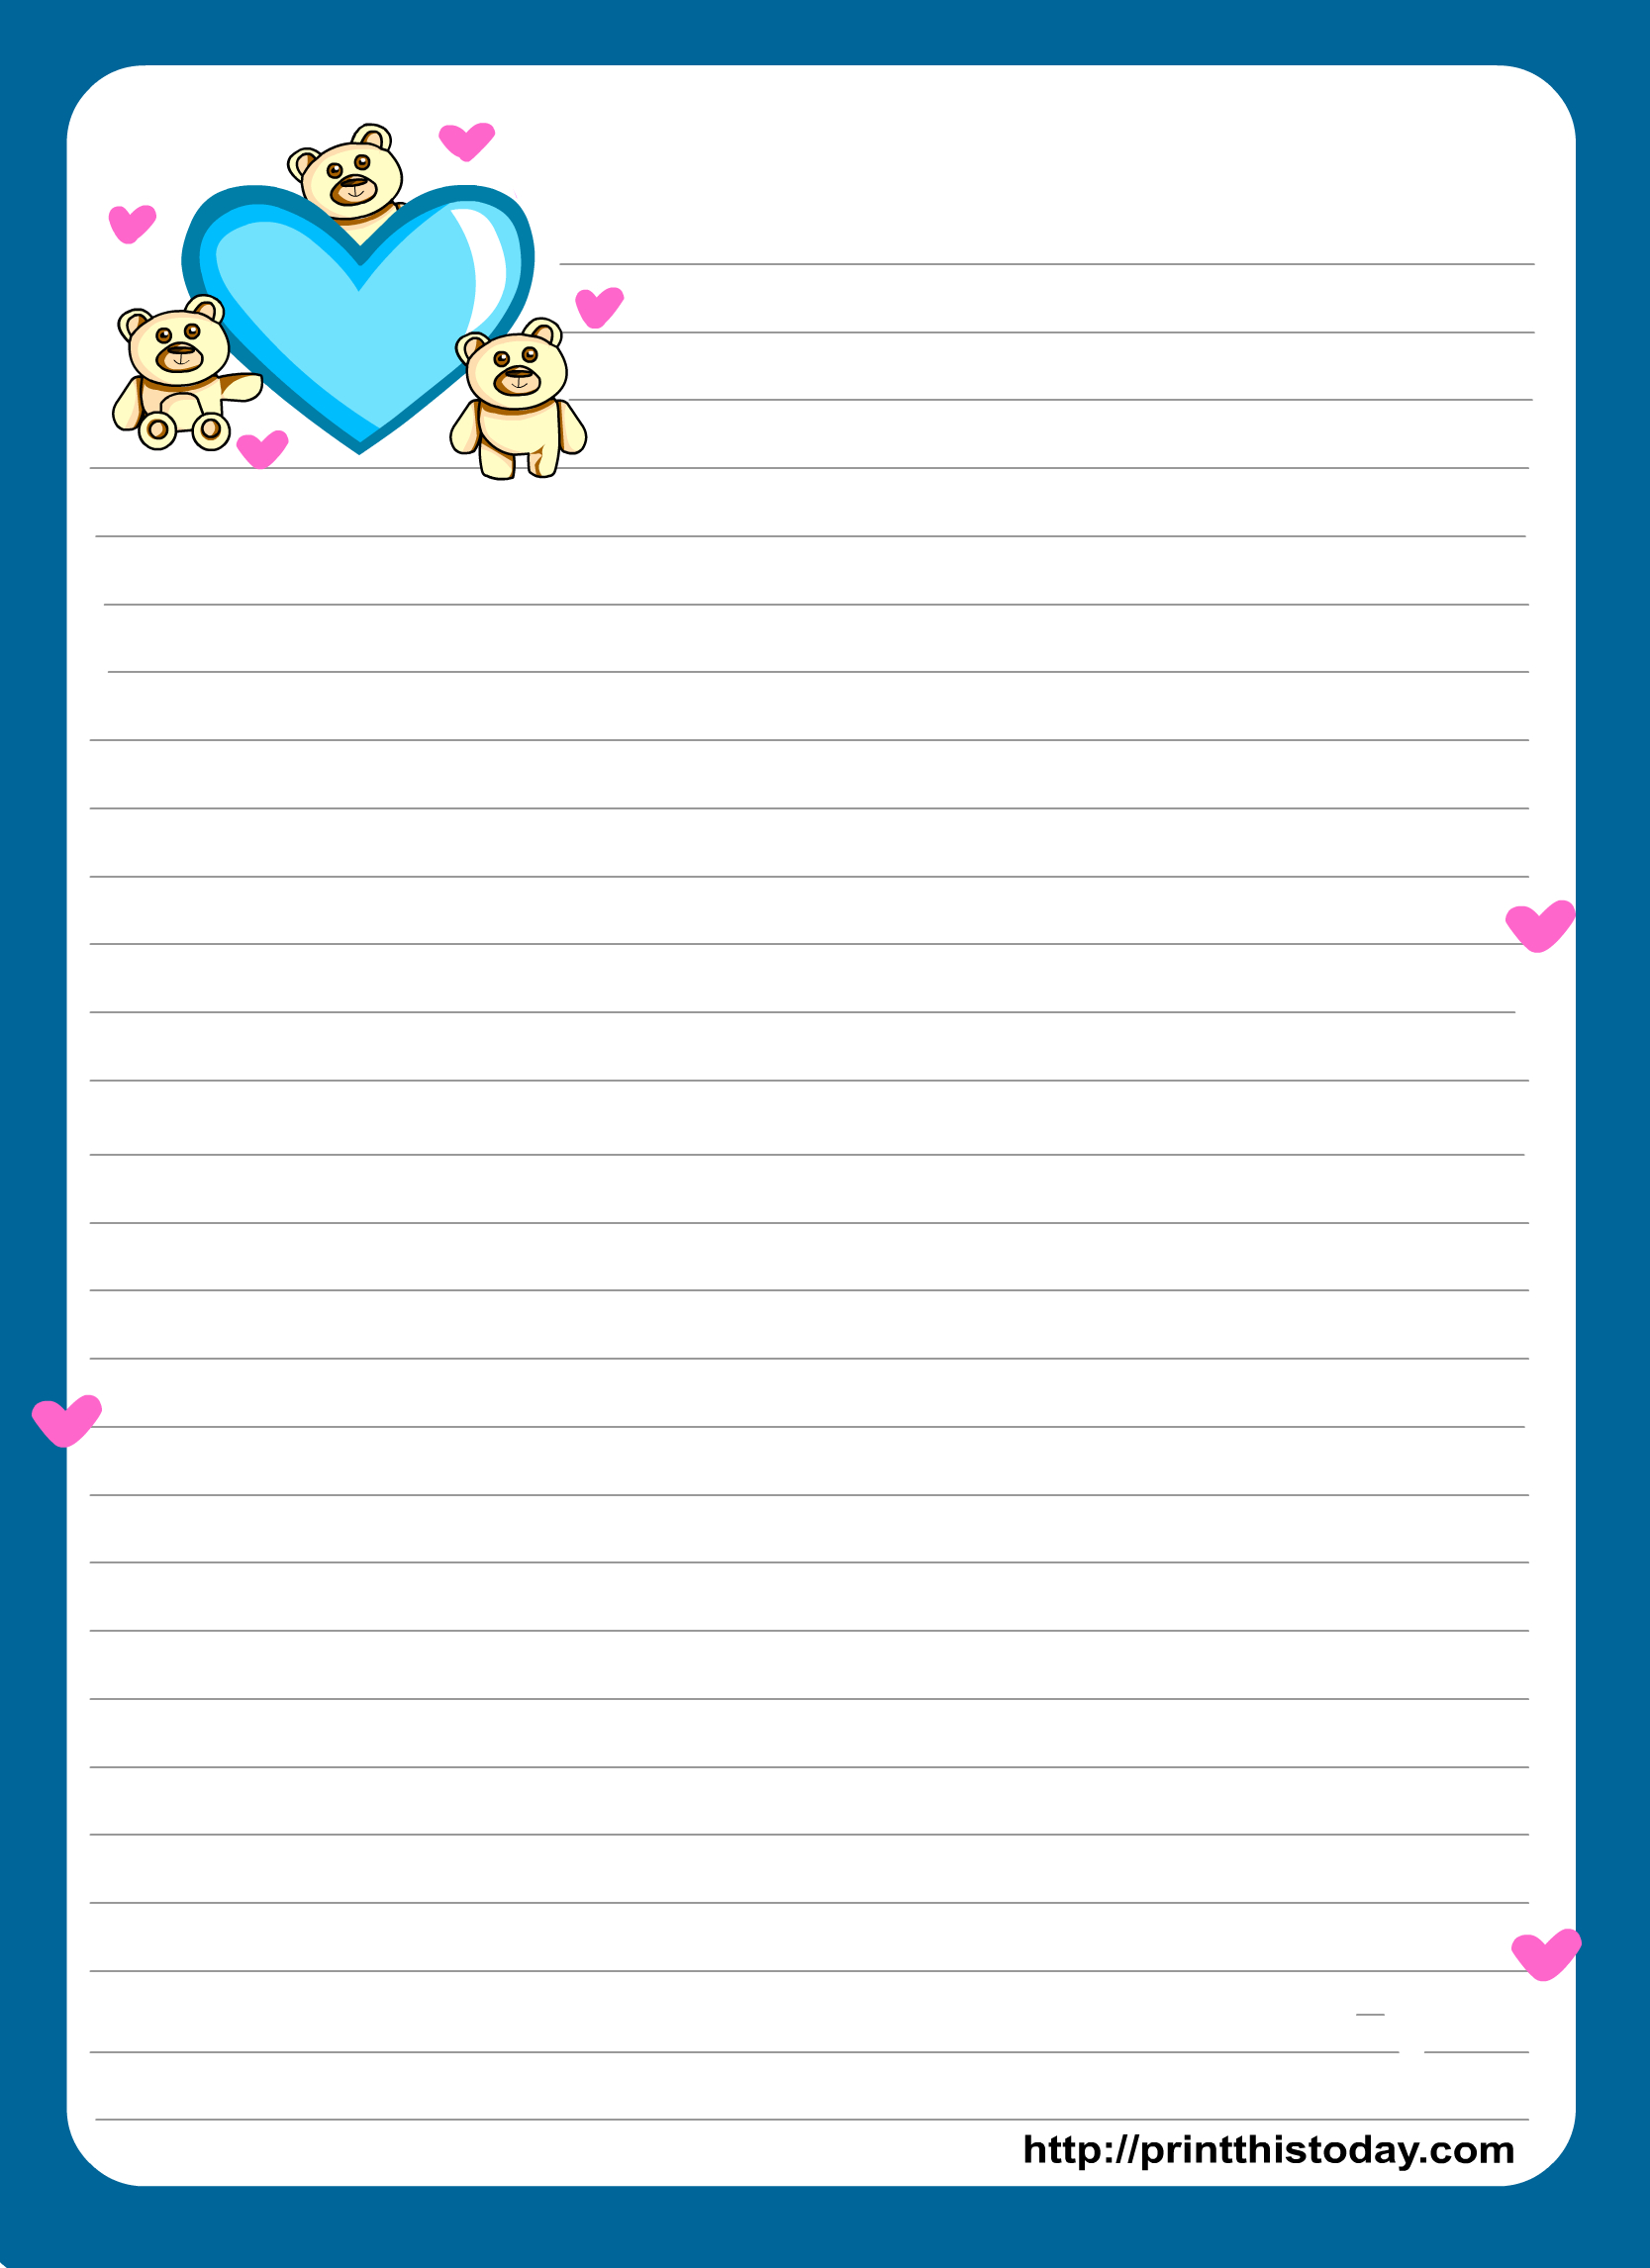 Miss You Love Letter Pad Stationery   Lined Stationery   Free - Free Printable Stationery Writing Paper